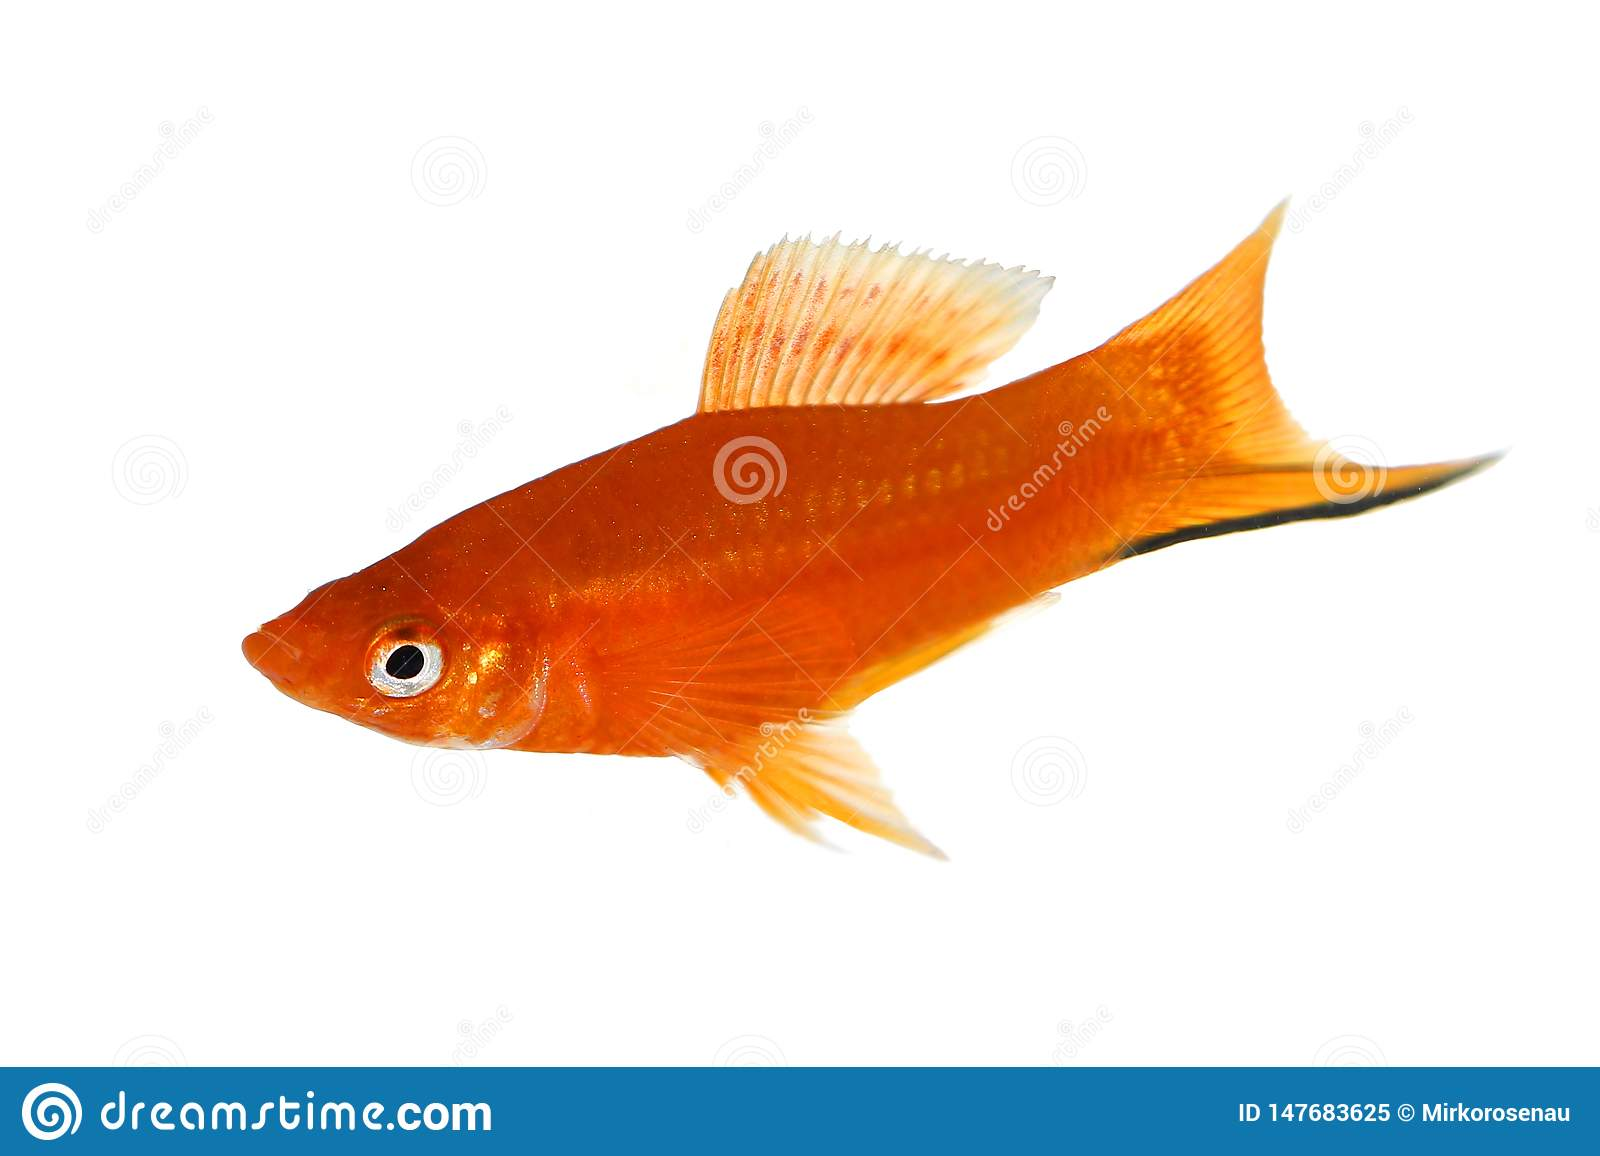 Red Swordtail Xiphophorus Helleri aquarium fish isolated on white